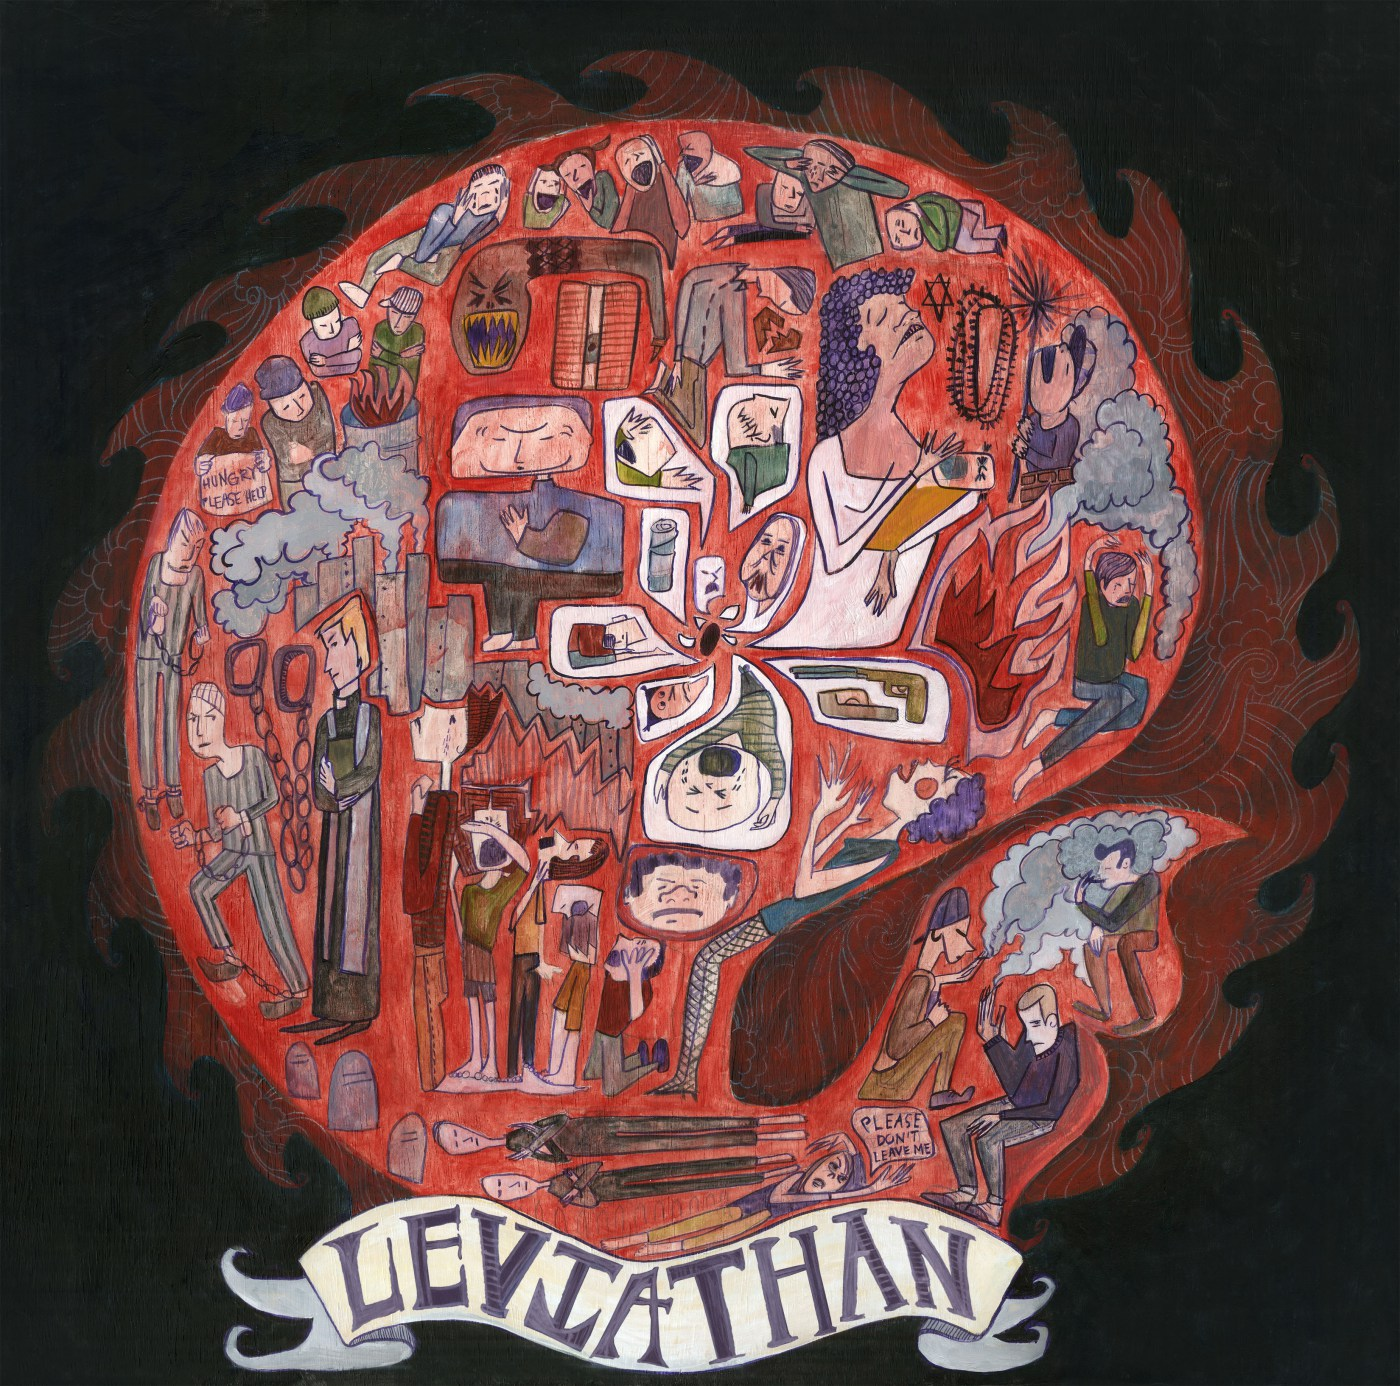 leviathan-red-merge-2-small-type-final